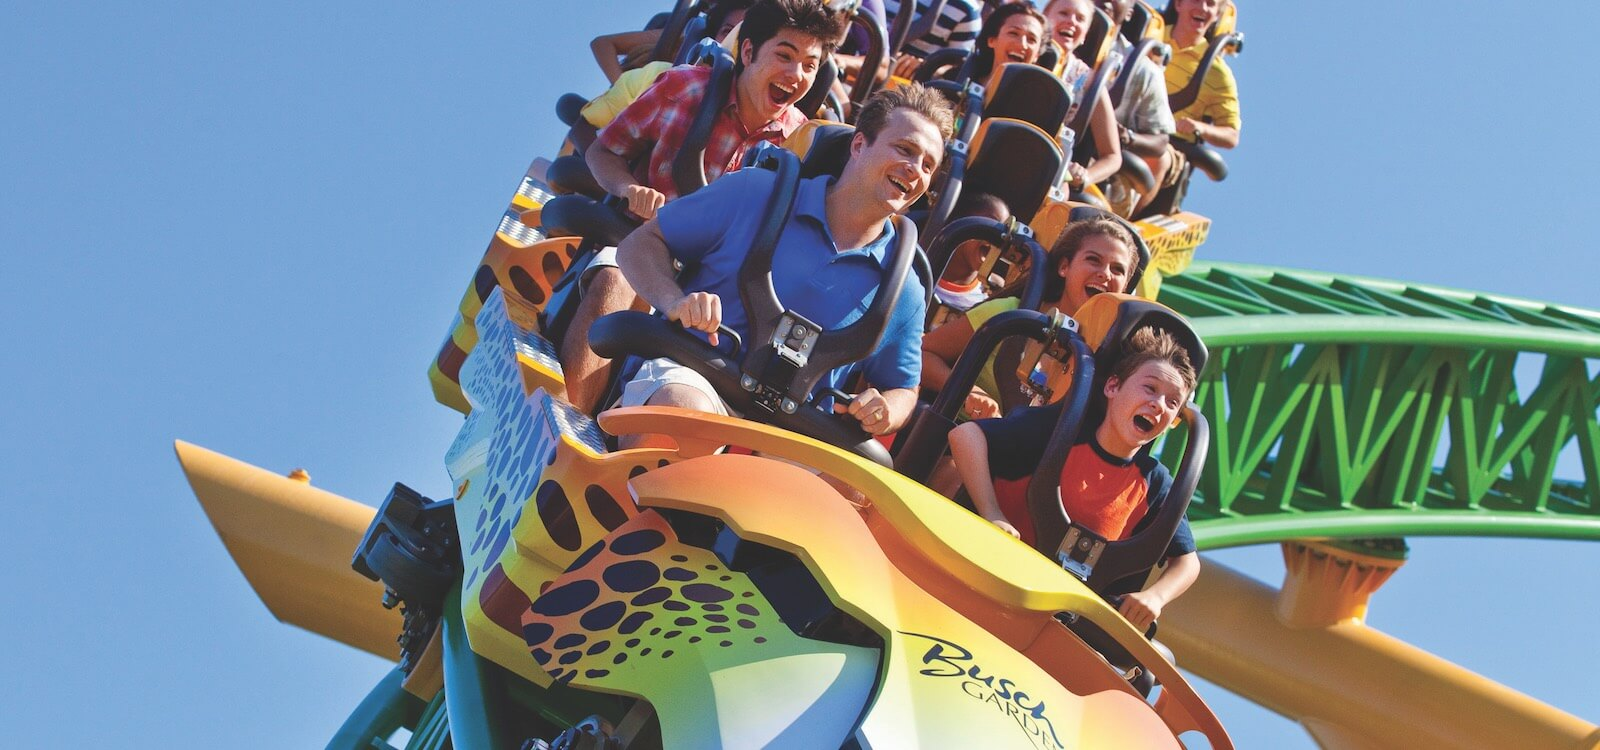 MustDo.com | A day trip from Sarasota, Florida to Busch Gardens Tampa Bay is fun for the entire family.